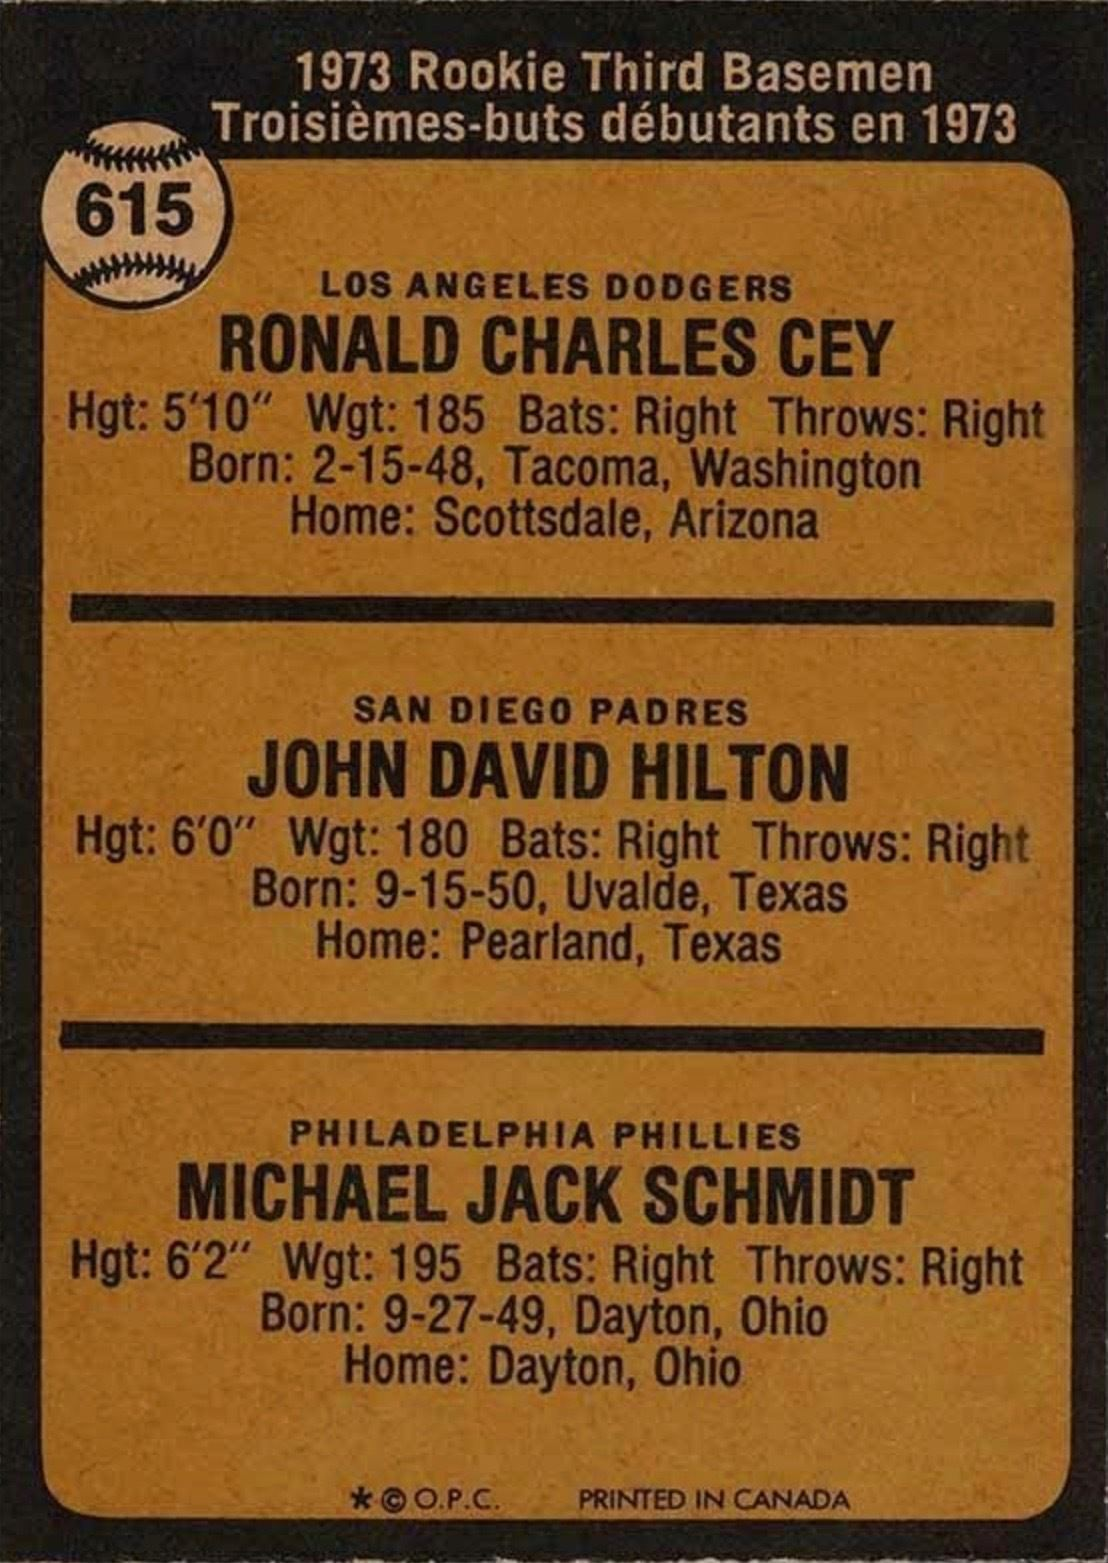 1973 O-Pee-Chee #615 Mike Schmidt Rookie Card Reverse Side With Personal Information